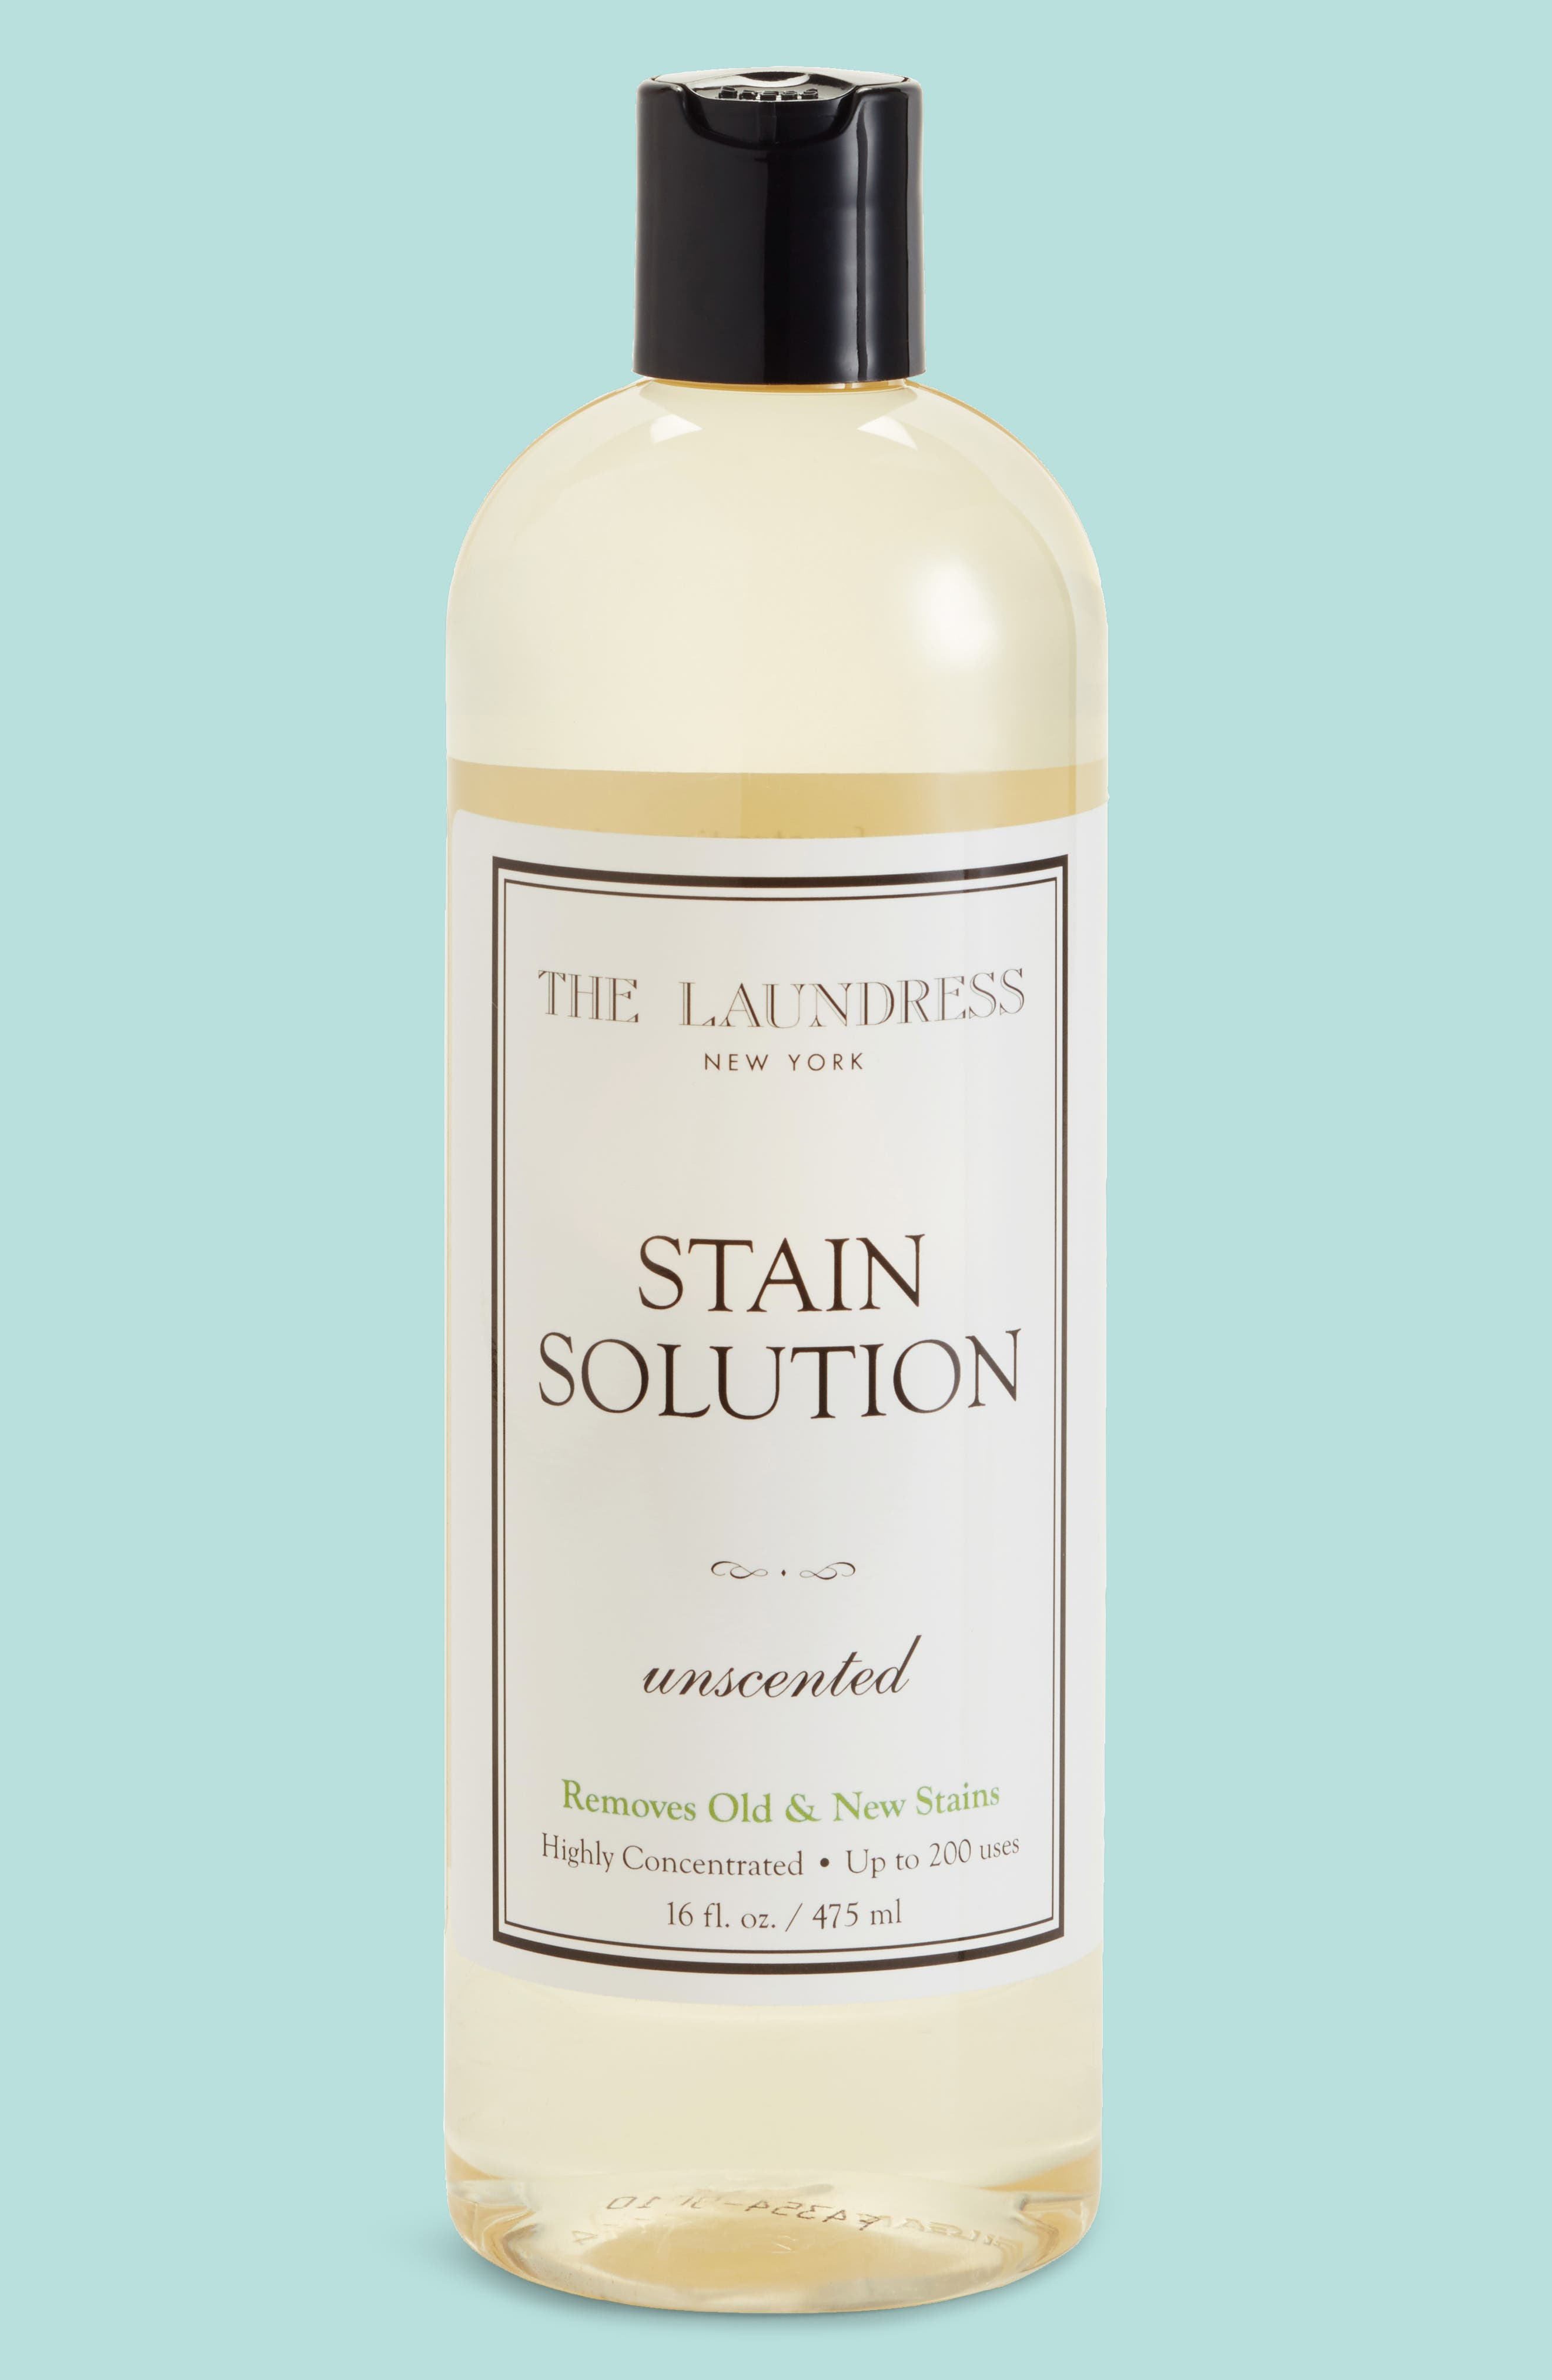 The Laundress Unscented Stain Solution